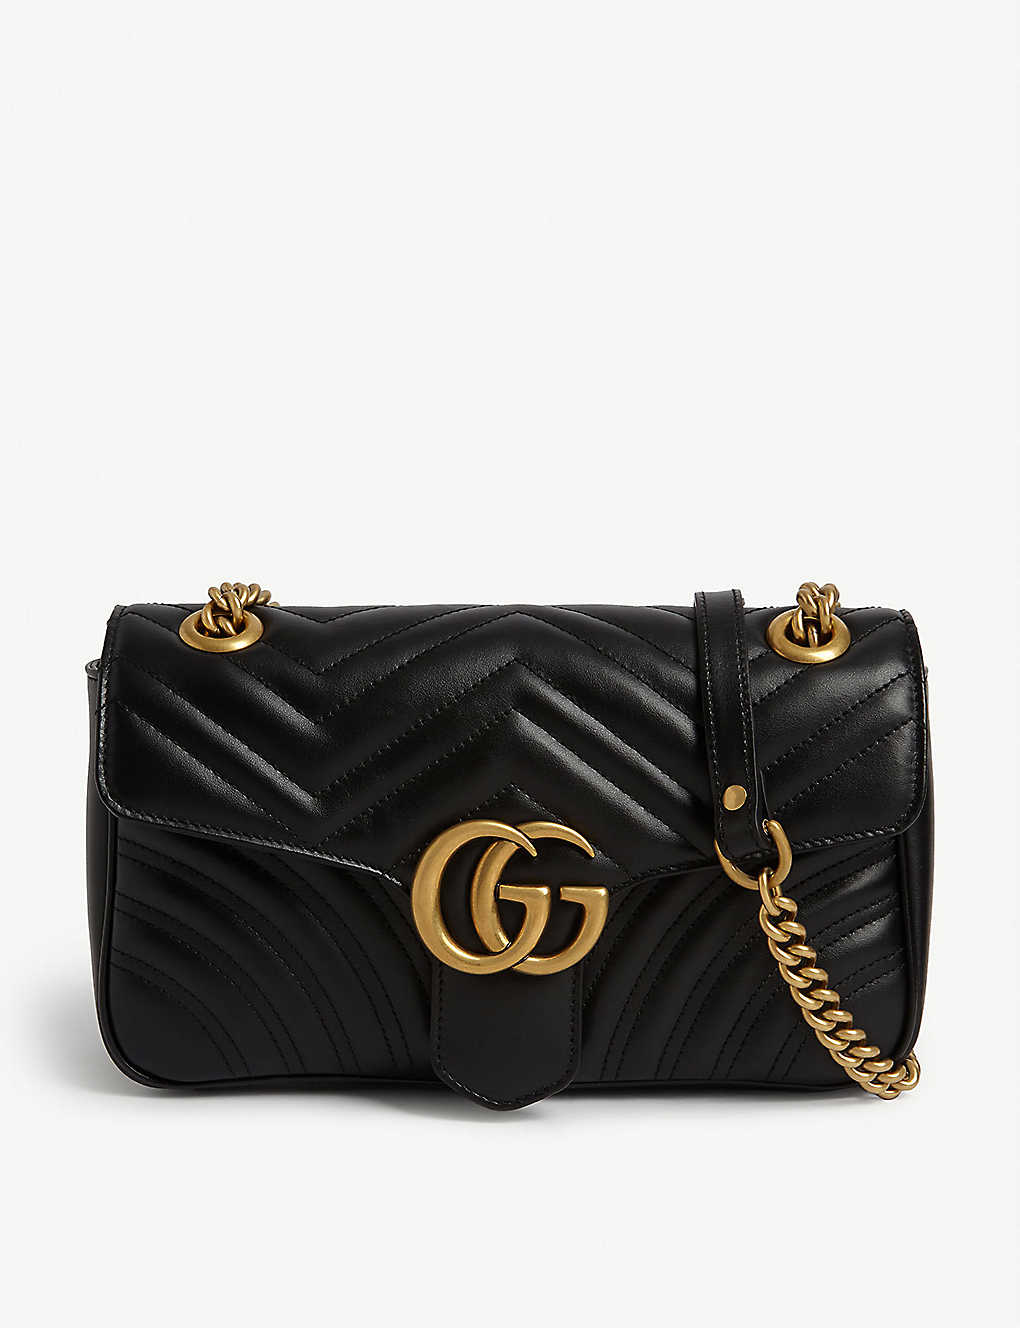 66a20d54594b GUCCI - Marmont leather shoulder bag | Selfridges.com